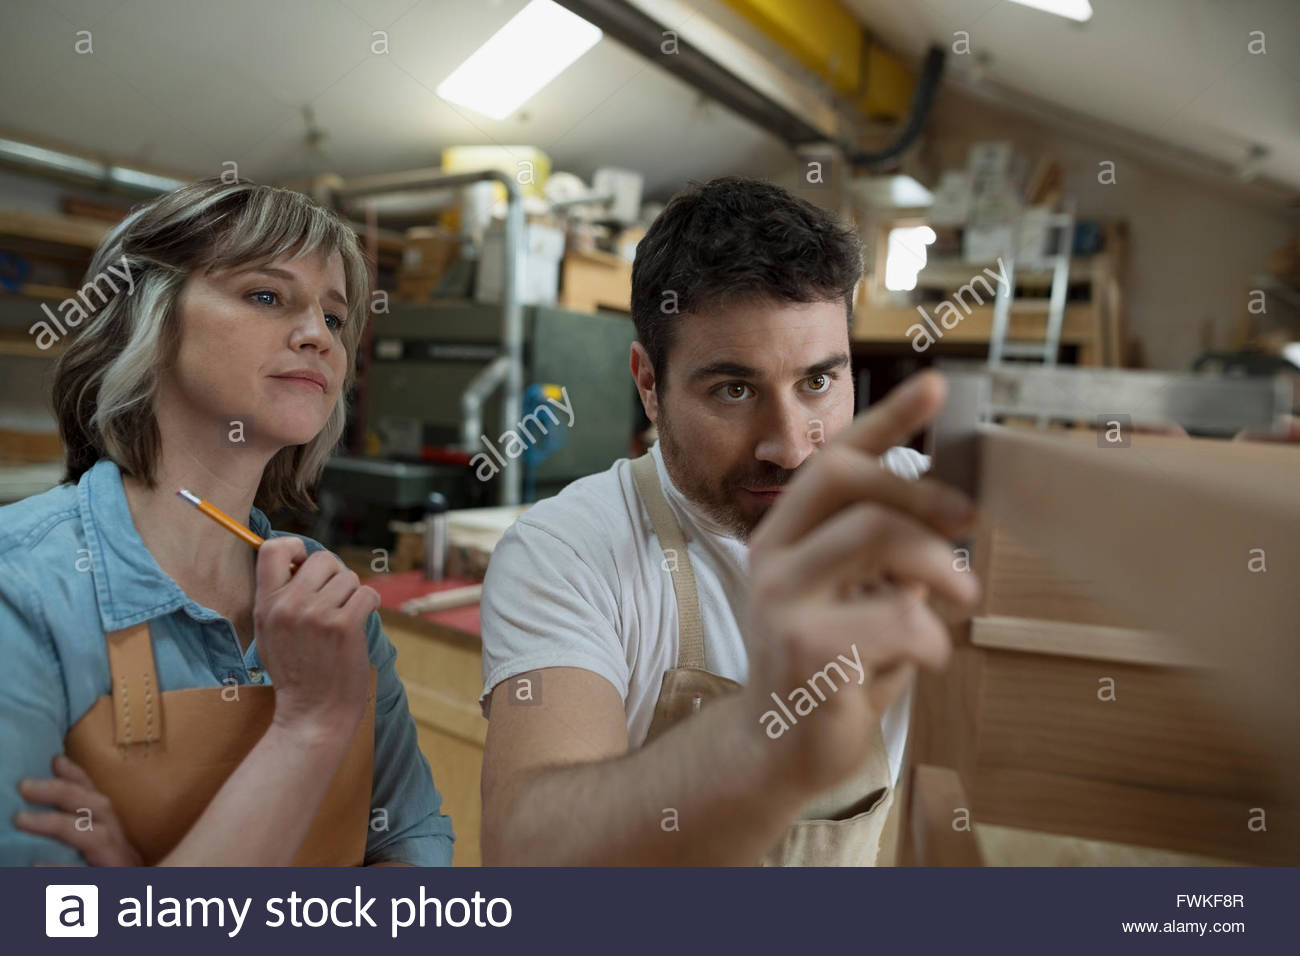 carpenters workshop stockfotos carpenters workshop bilder alamy. Black Bedroom Furniture Sets. Home Design Ideas